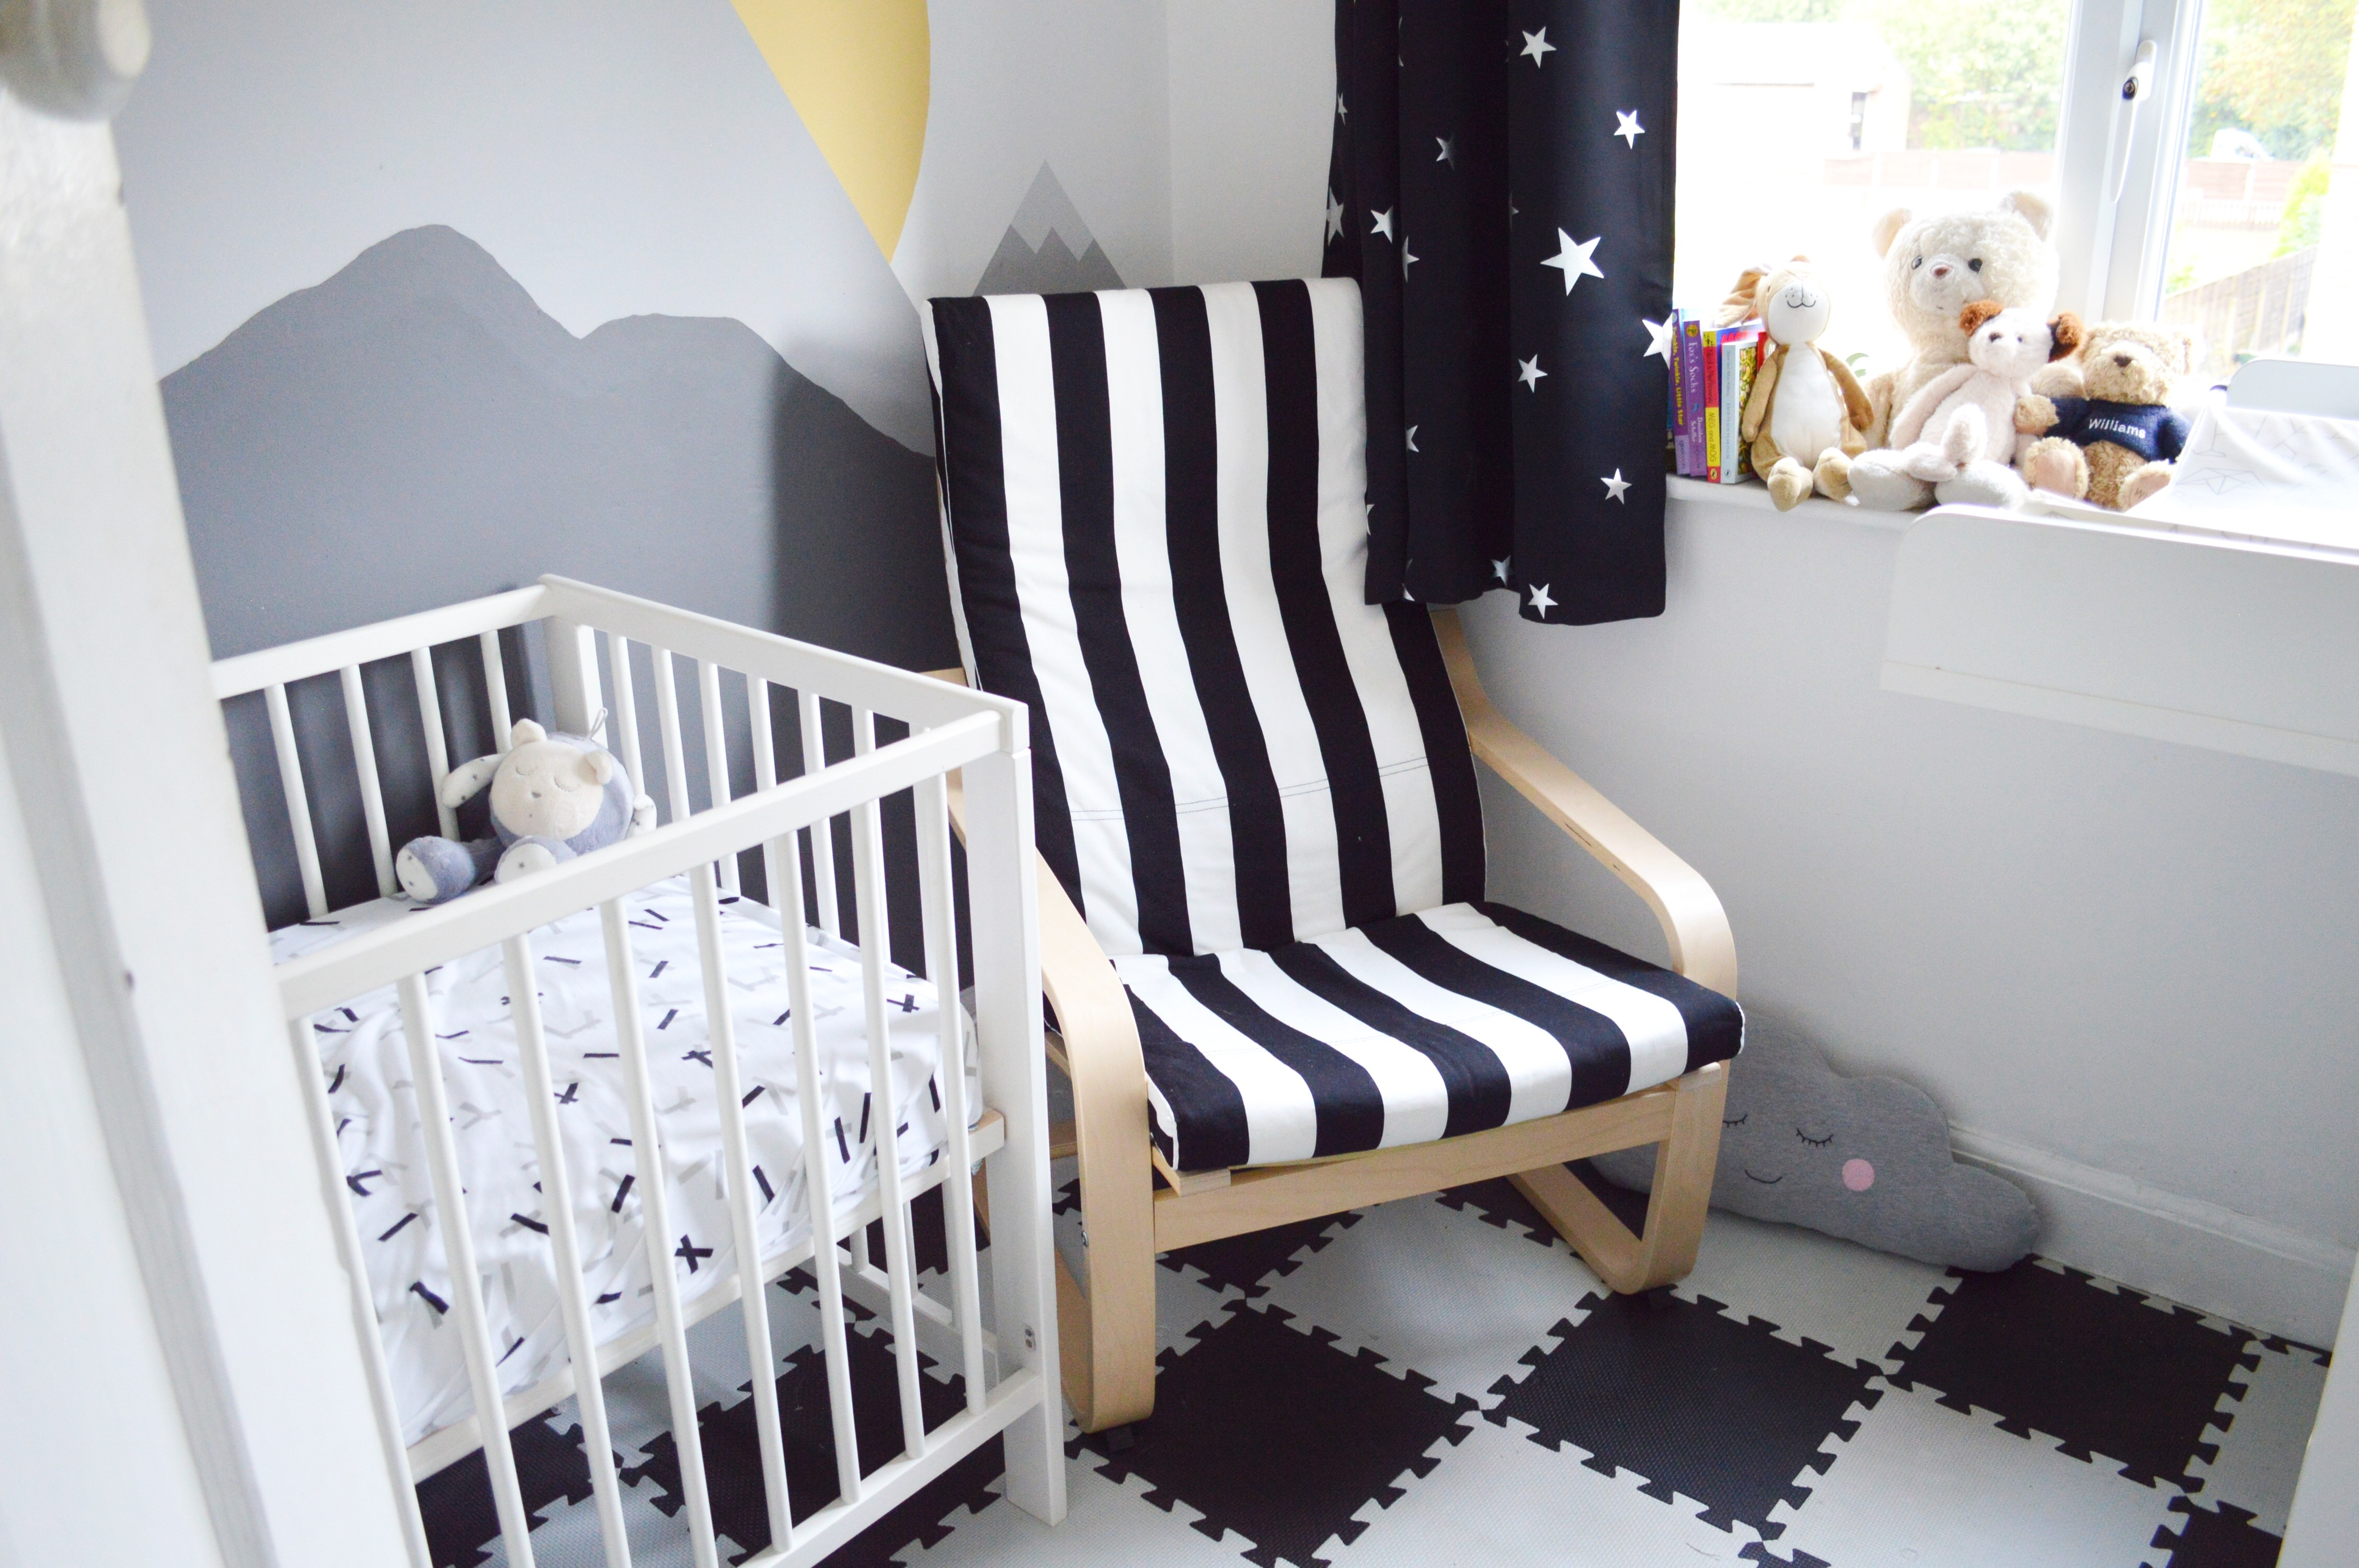 Ikea Poang Chair Review - Our New Nursing Chair - Oh Hi DIY